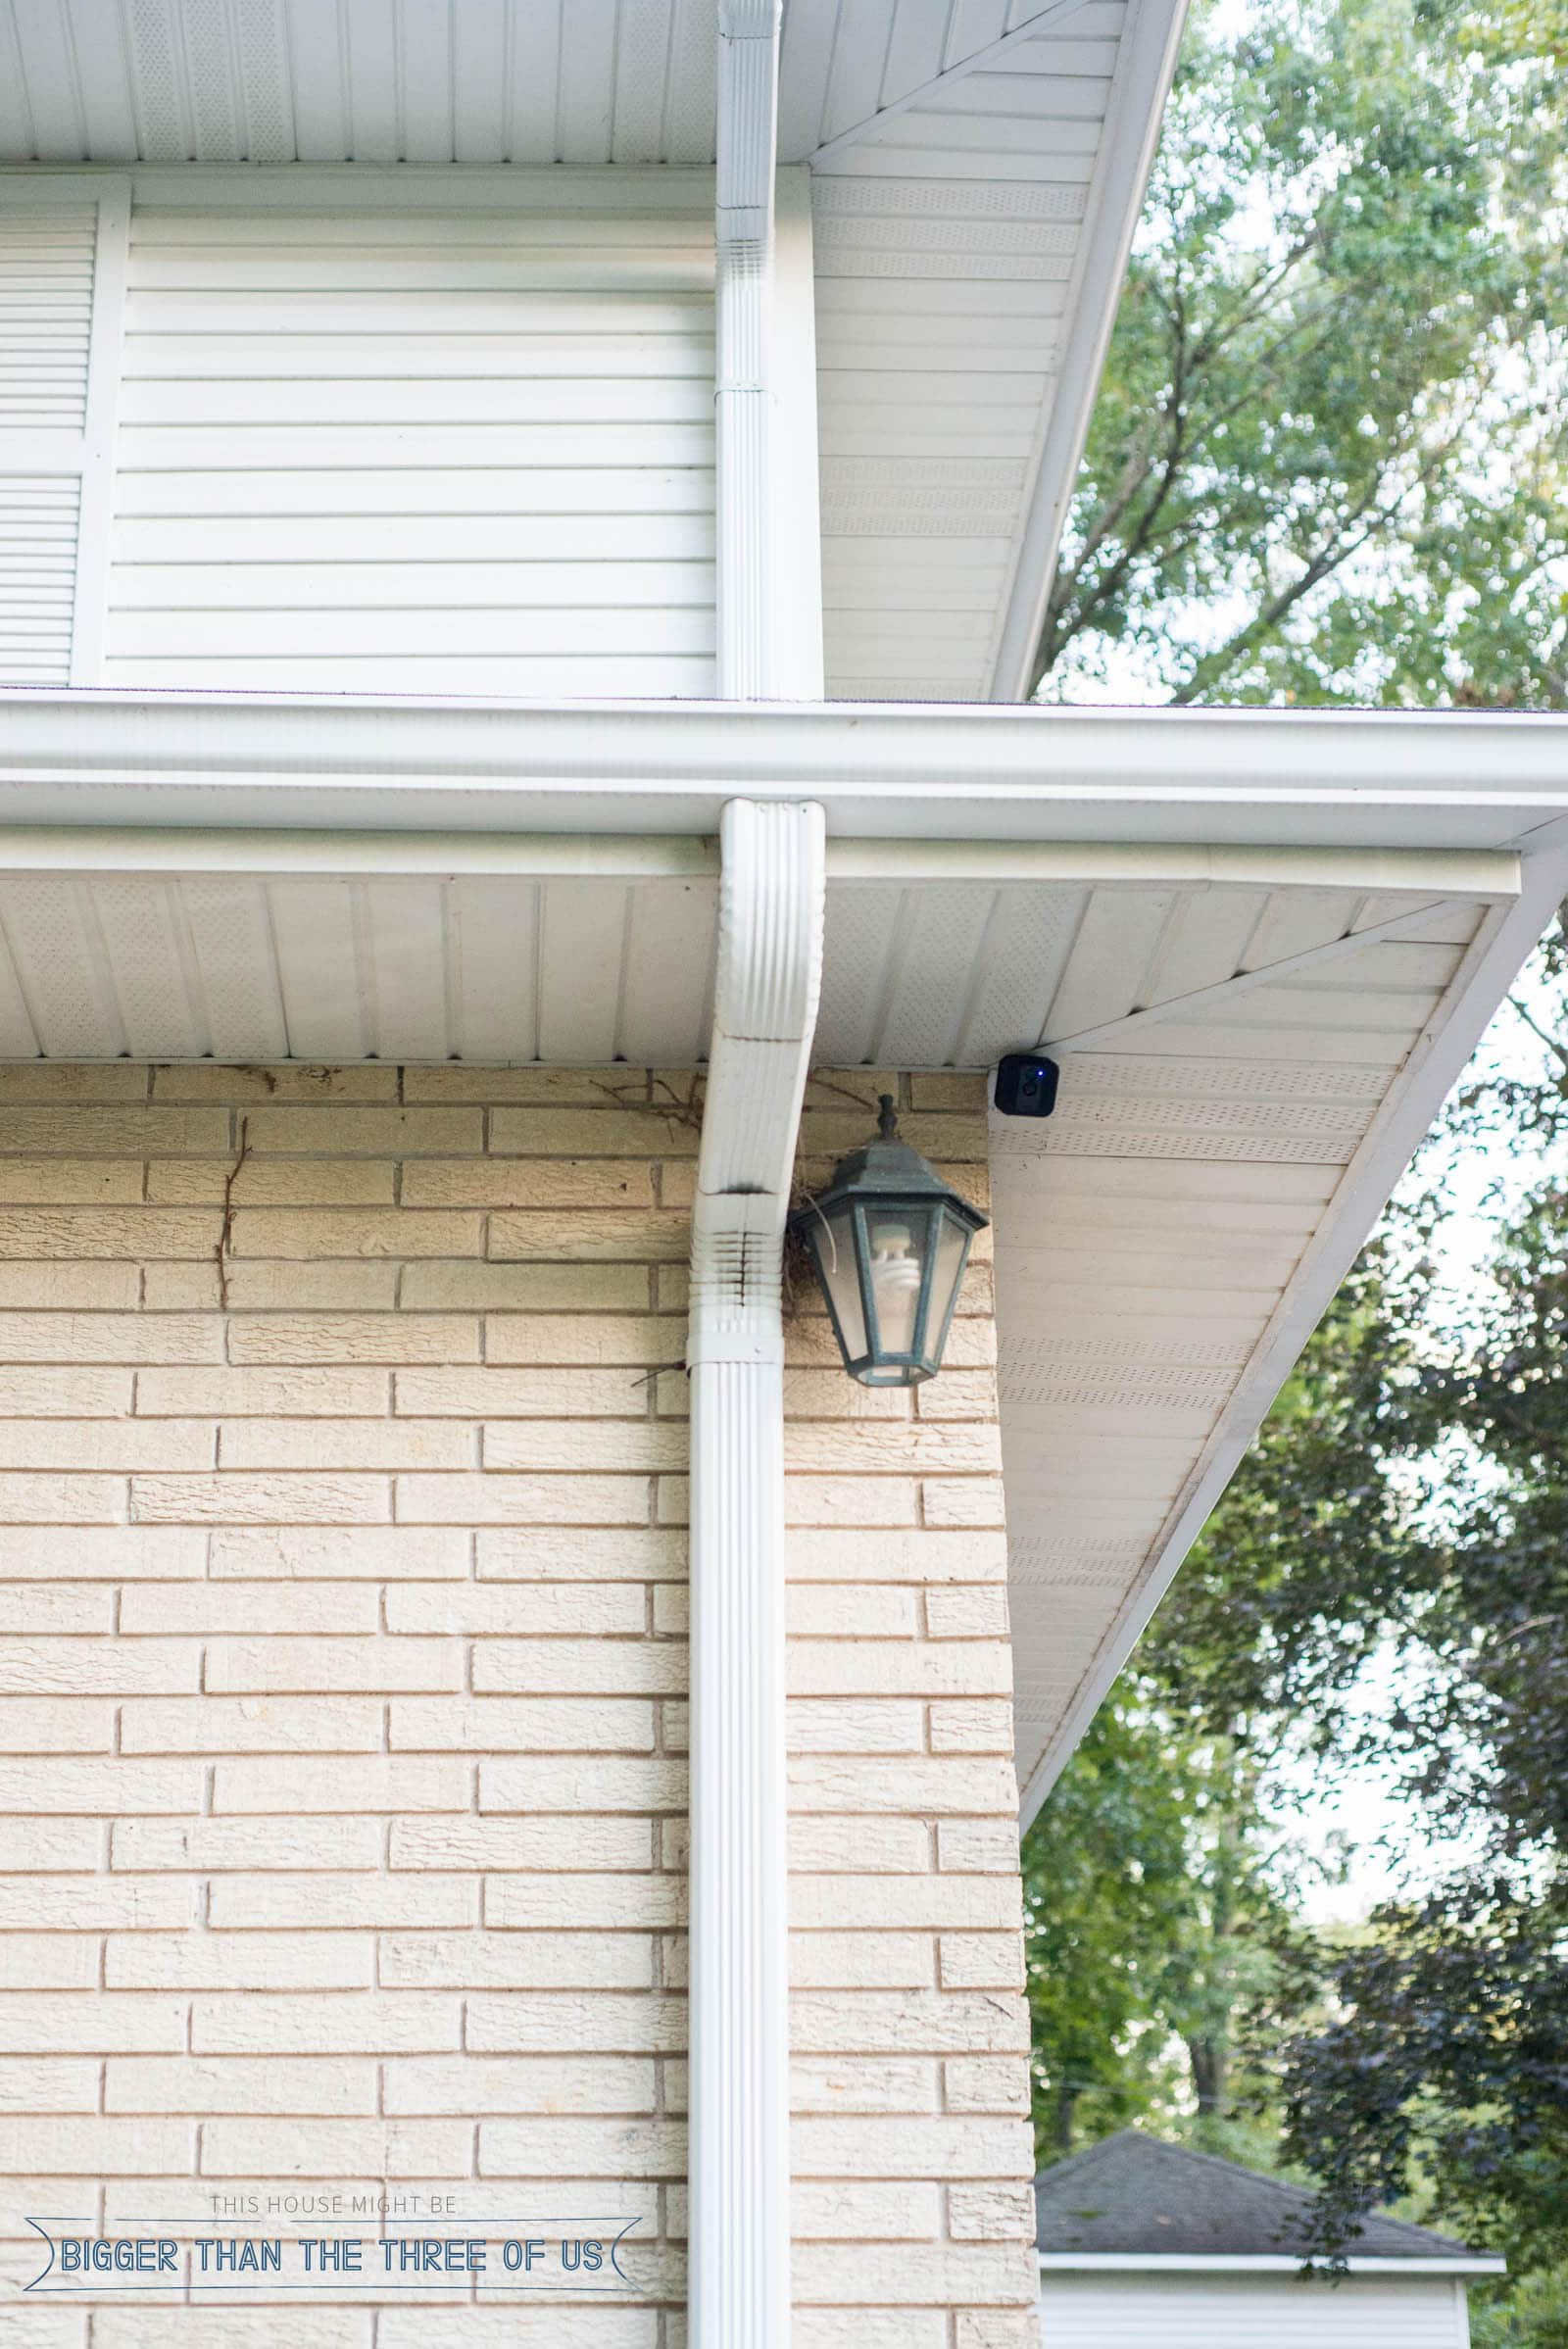 Blink Home Security: Simple and easy install and no monthly fees. Come over and see how we are using our newest security upgrade! #exteriorsecurity #homesafety